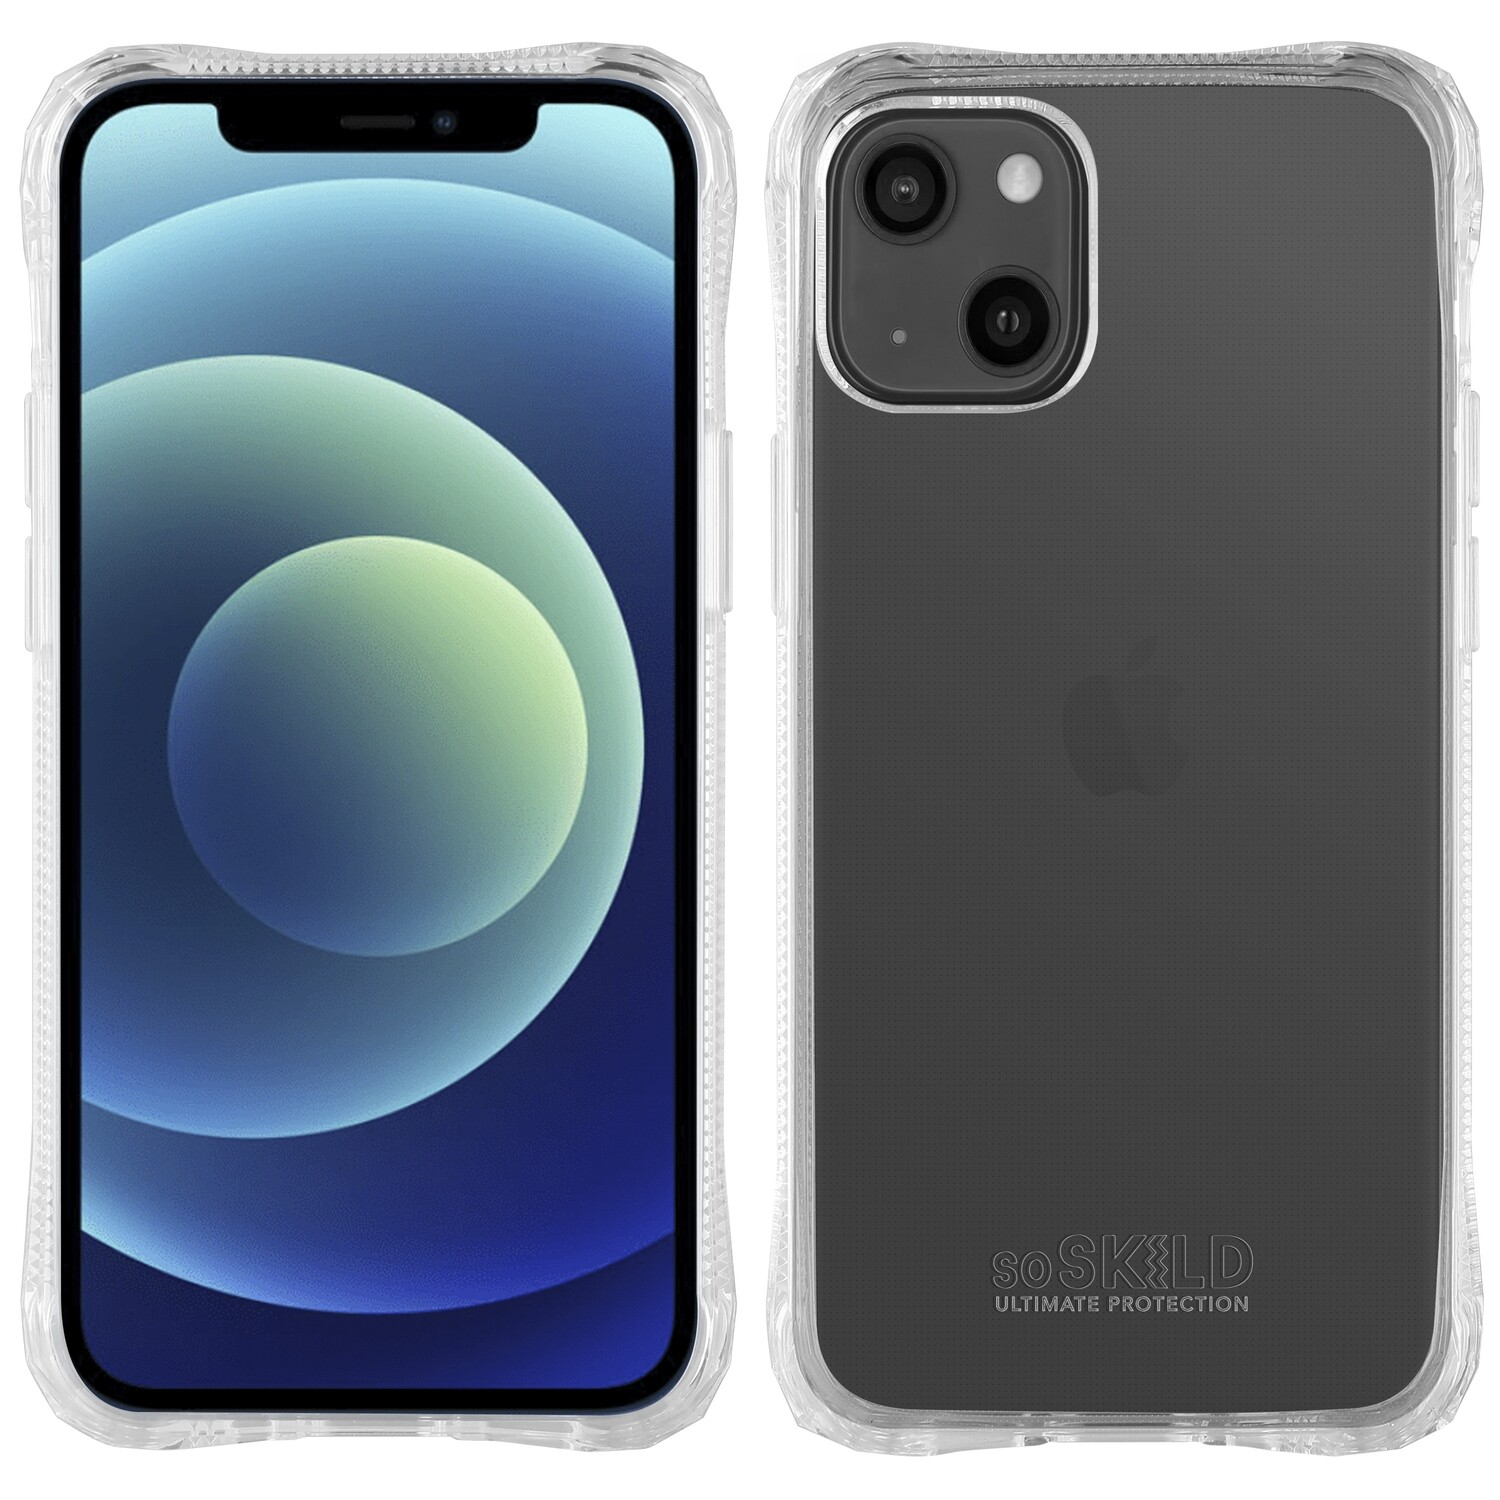 iPhone 13 Absorb 2.0 Impact Hoesje - Transparant